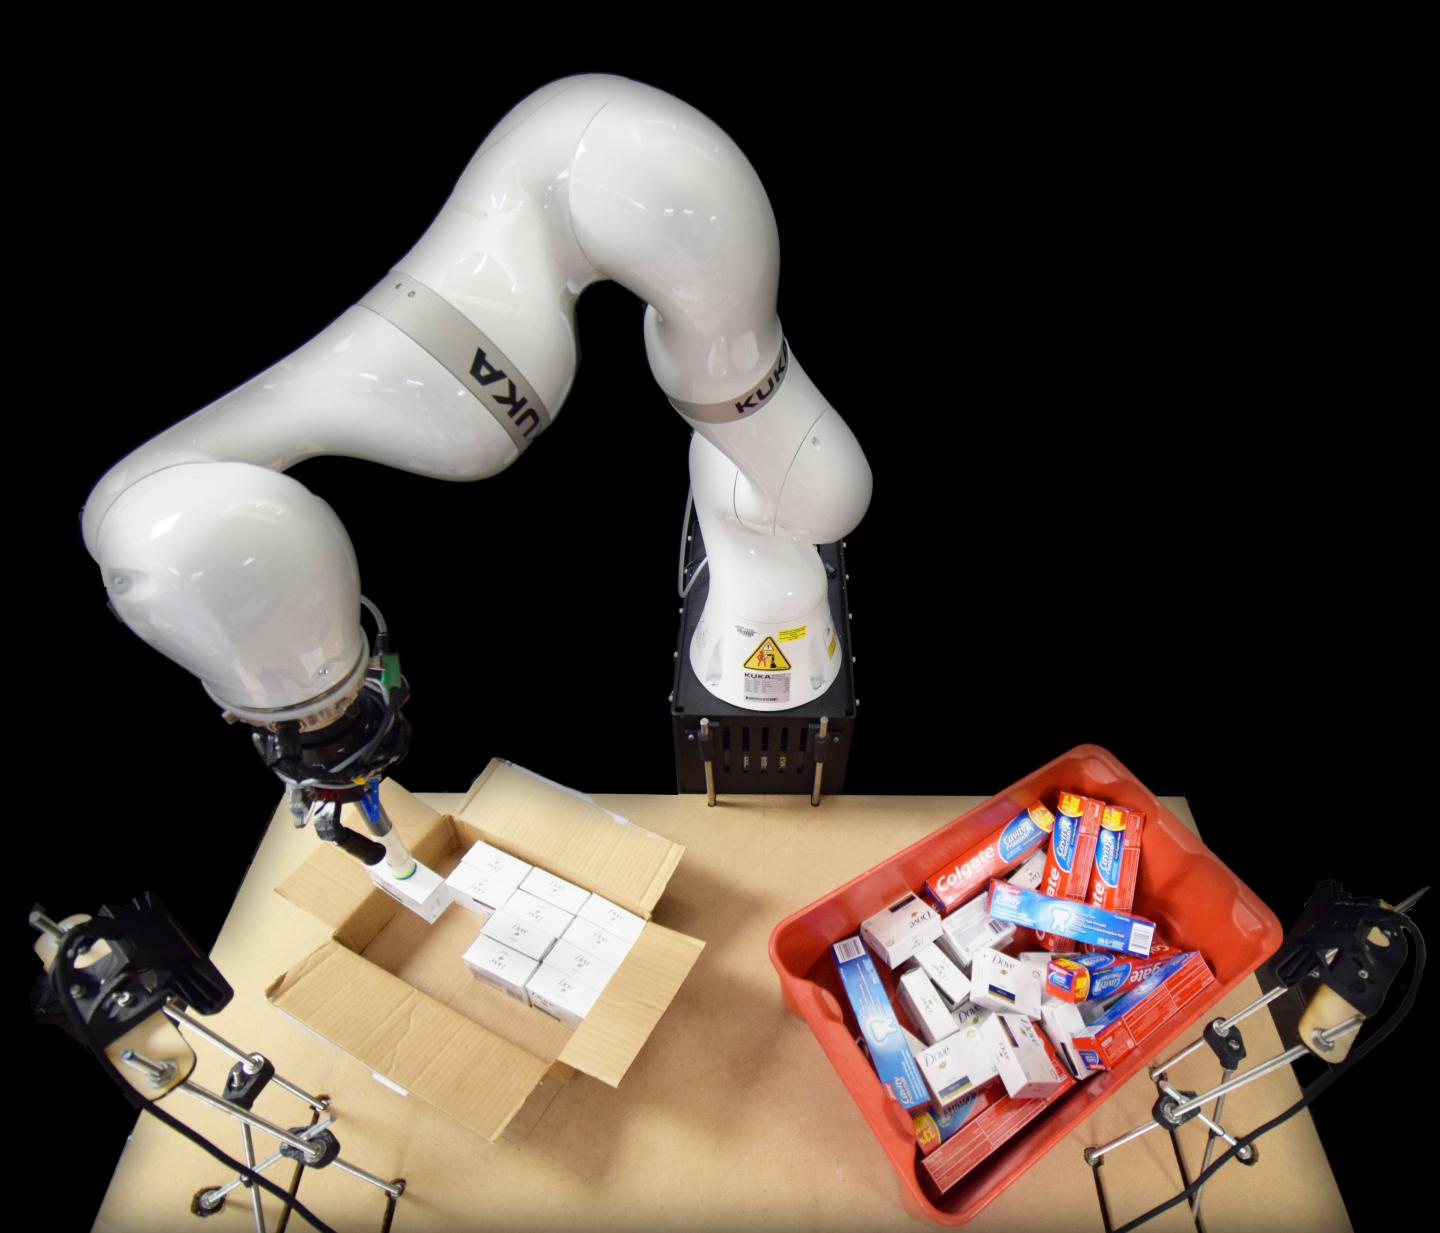 This AI powered Robot arm can help pack things 16